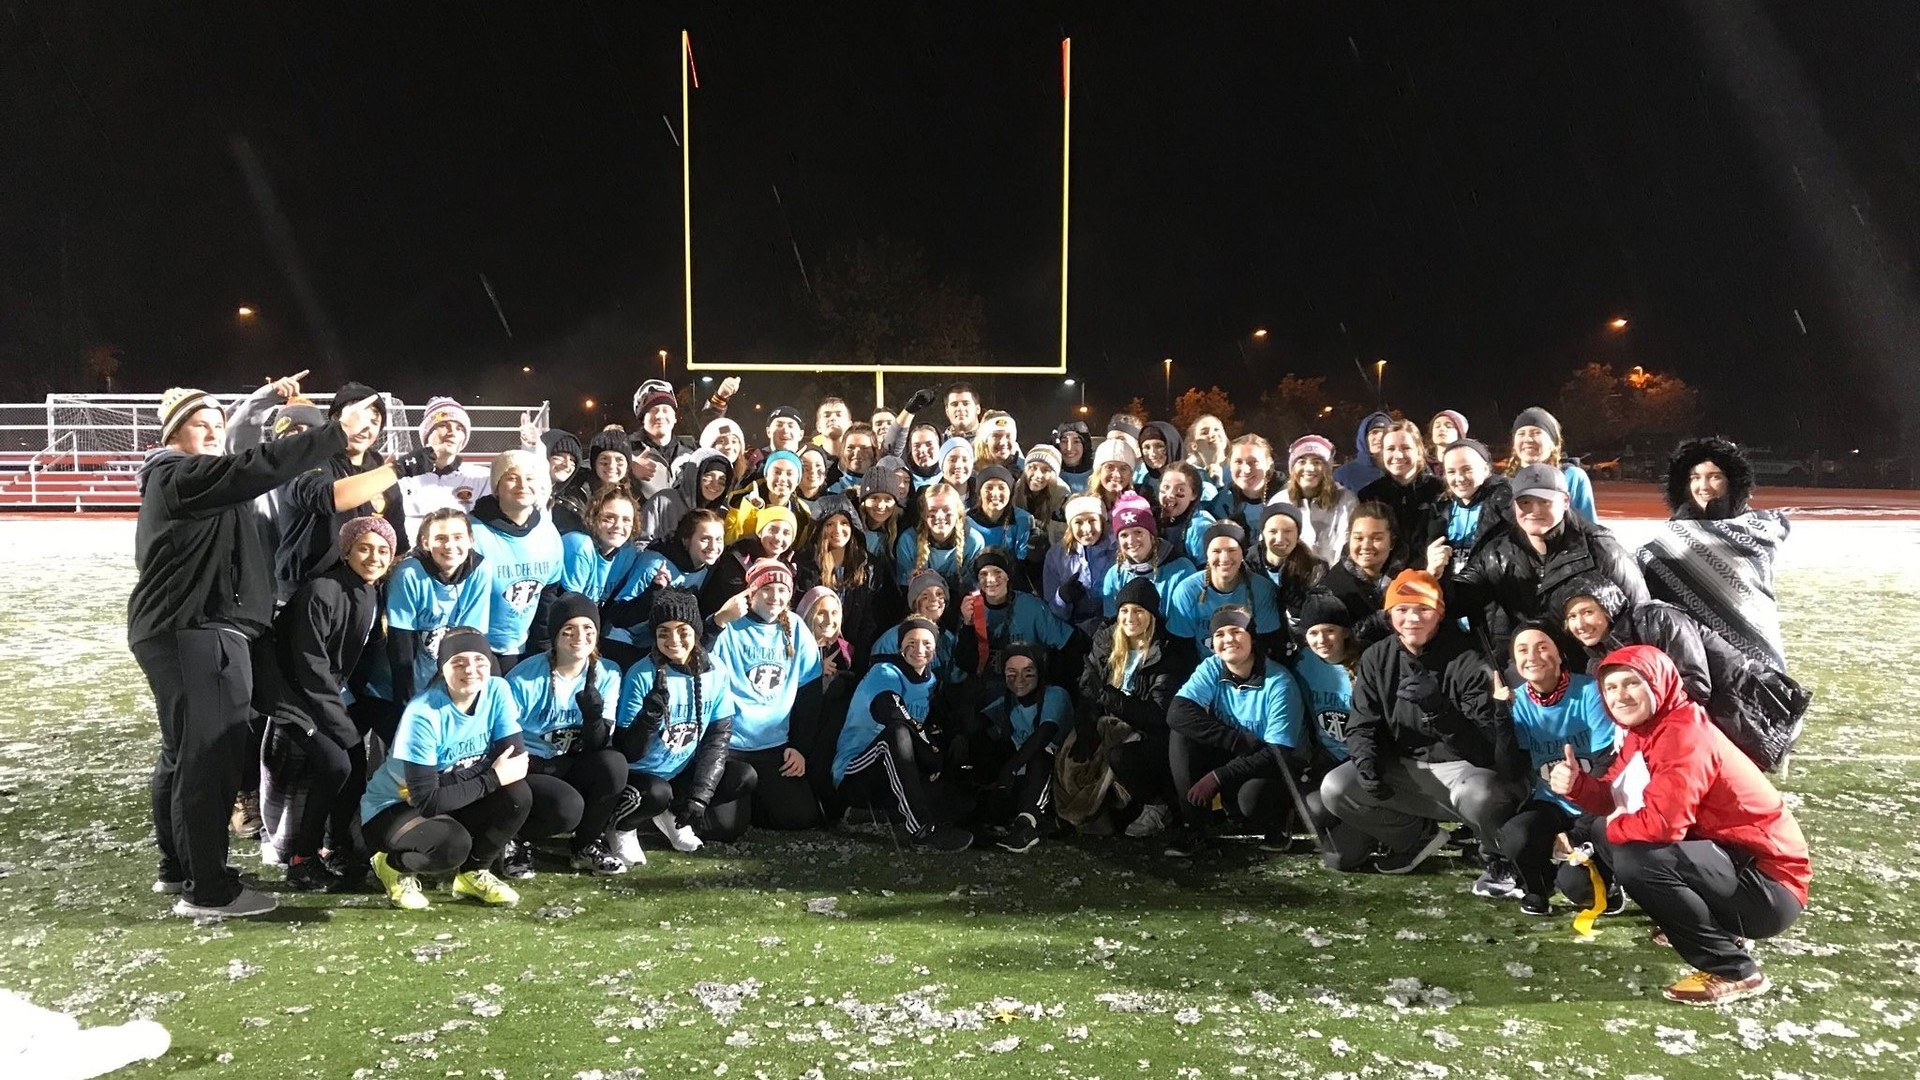 Powderpuff Game Seniors Win!